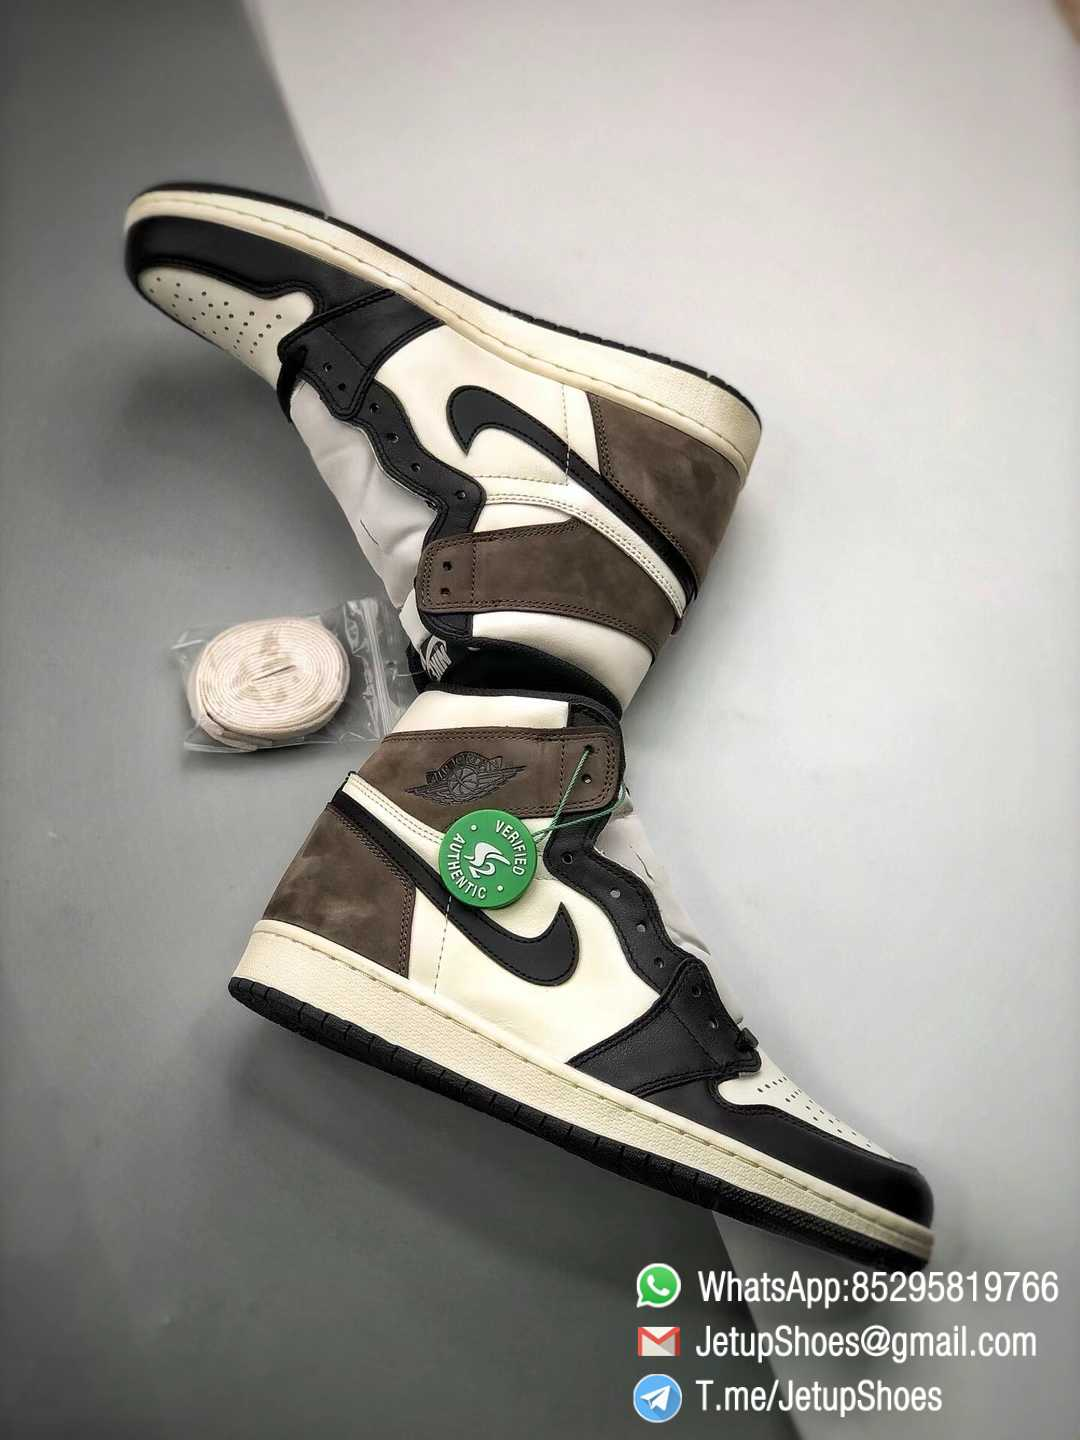 Best Replica Air Jordan 1 Retro High OG Dark Mocha Off white Leather Base and Black Overylays Top Quality Sneakers 011